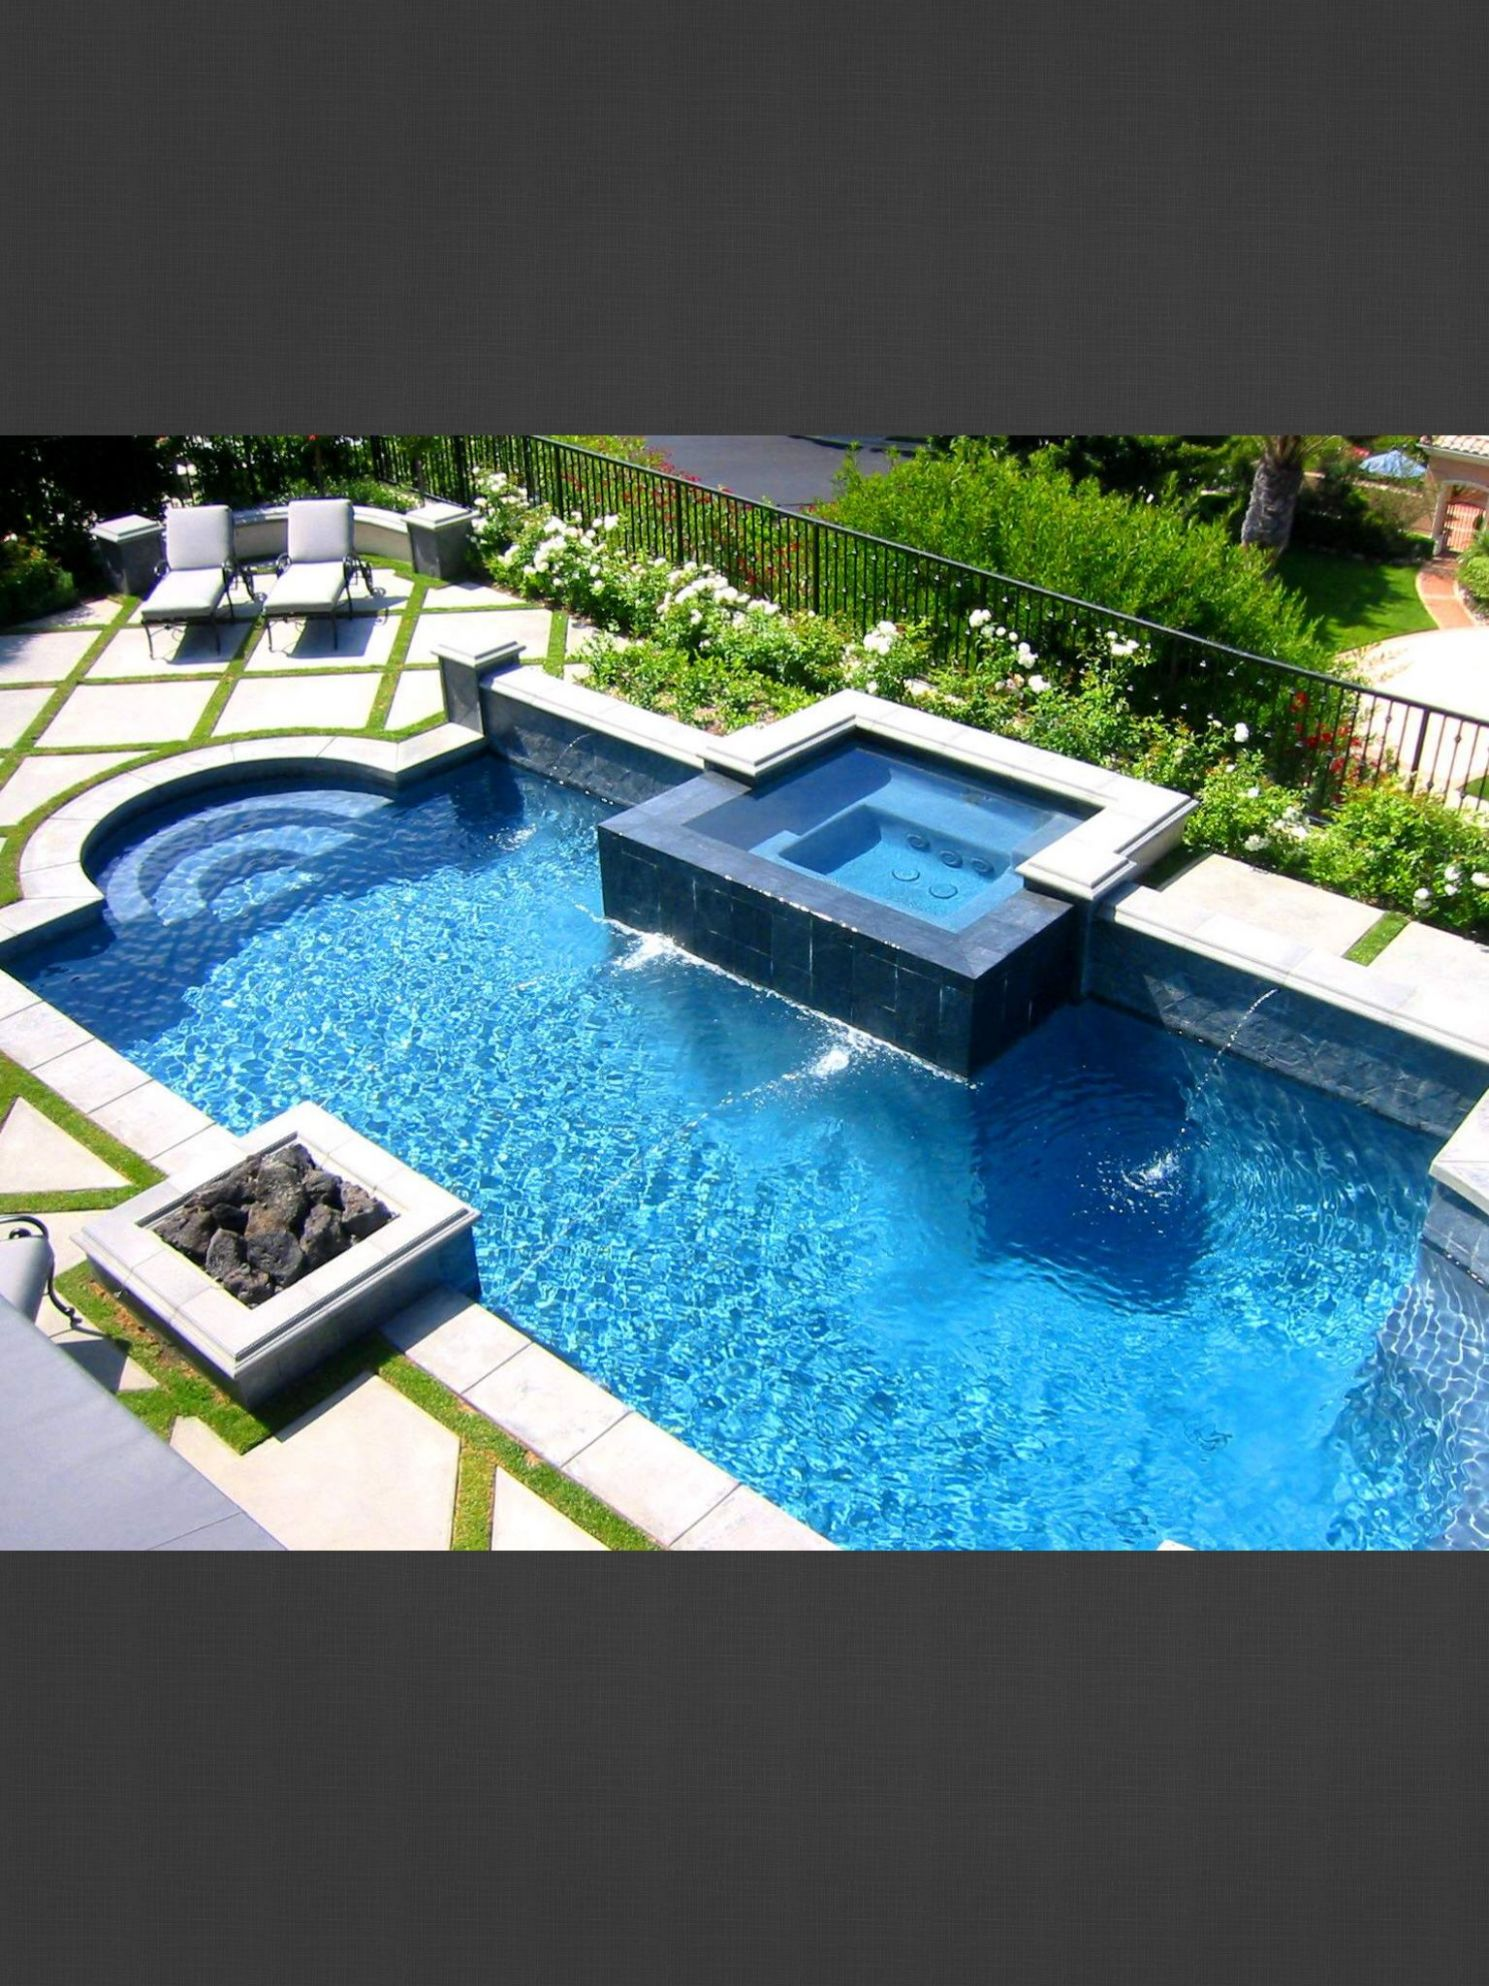 Grass and cement deck around pool | Hot tub garden, Fire pit ...